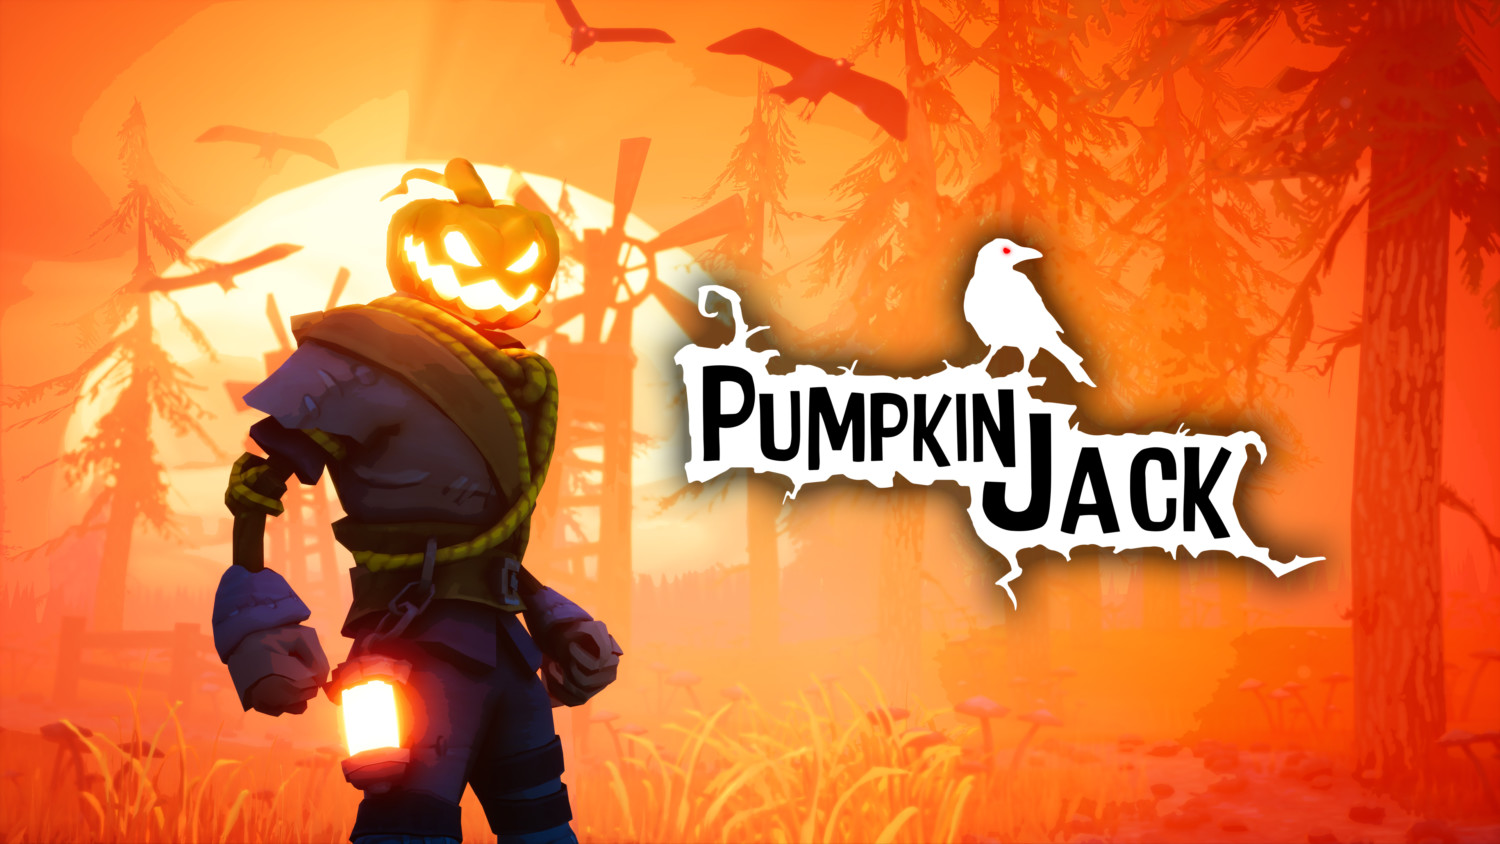 3D Platformer Pumpkin Jack Announced For Switch, Due Out In Q4 2020   NintendoSoup